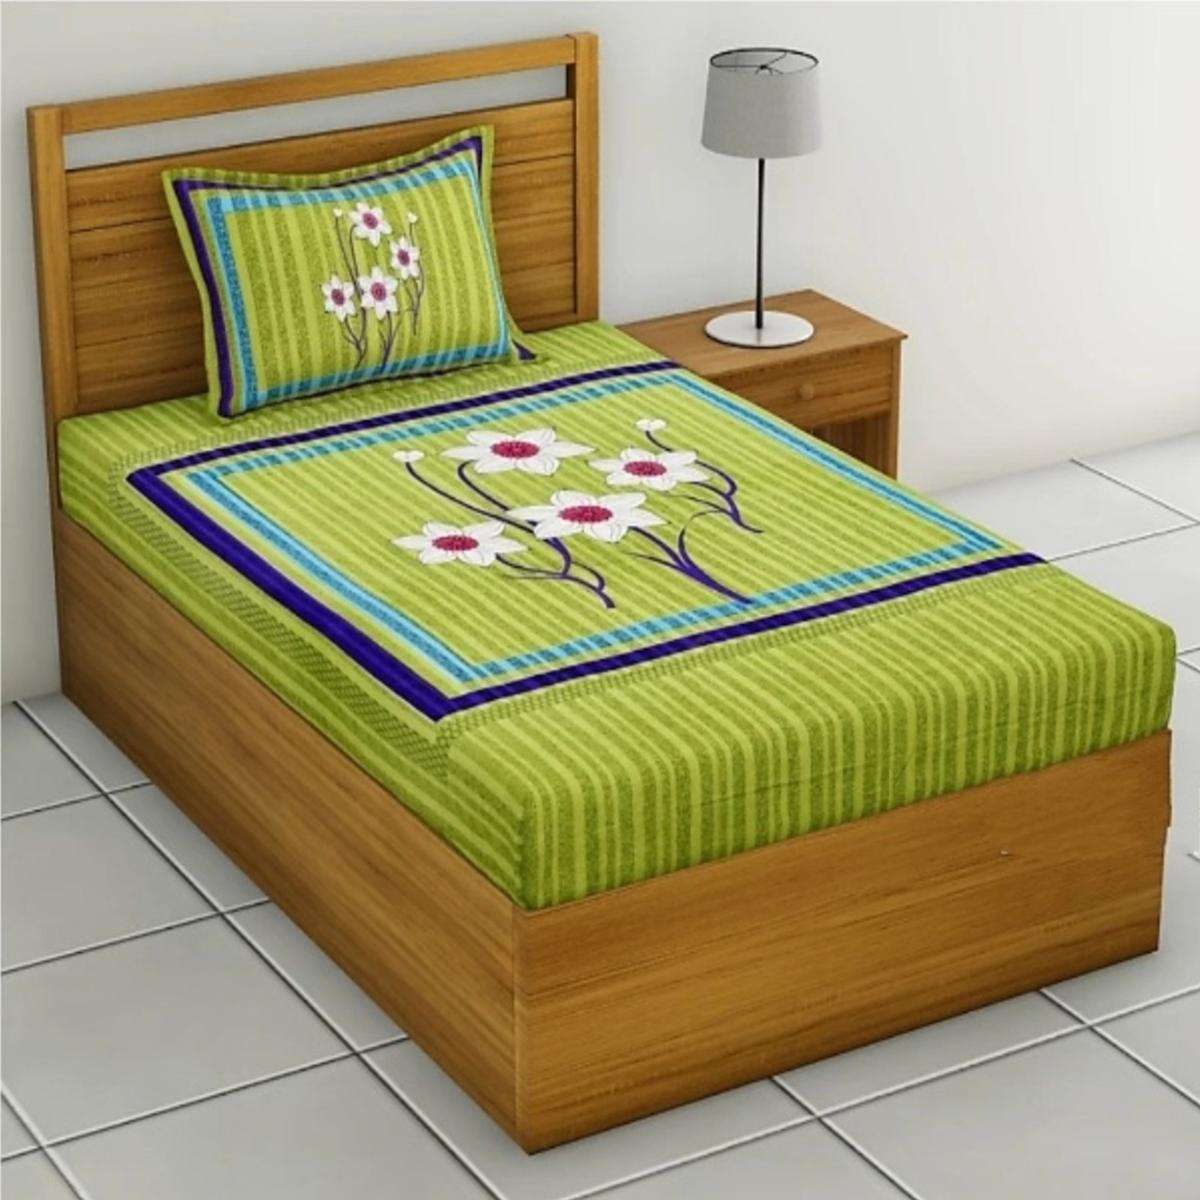 Captivating Green Colored Floral Print Cotton Single Bedsheet With 1 Pillow Cover